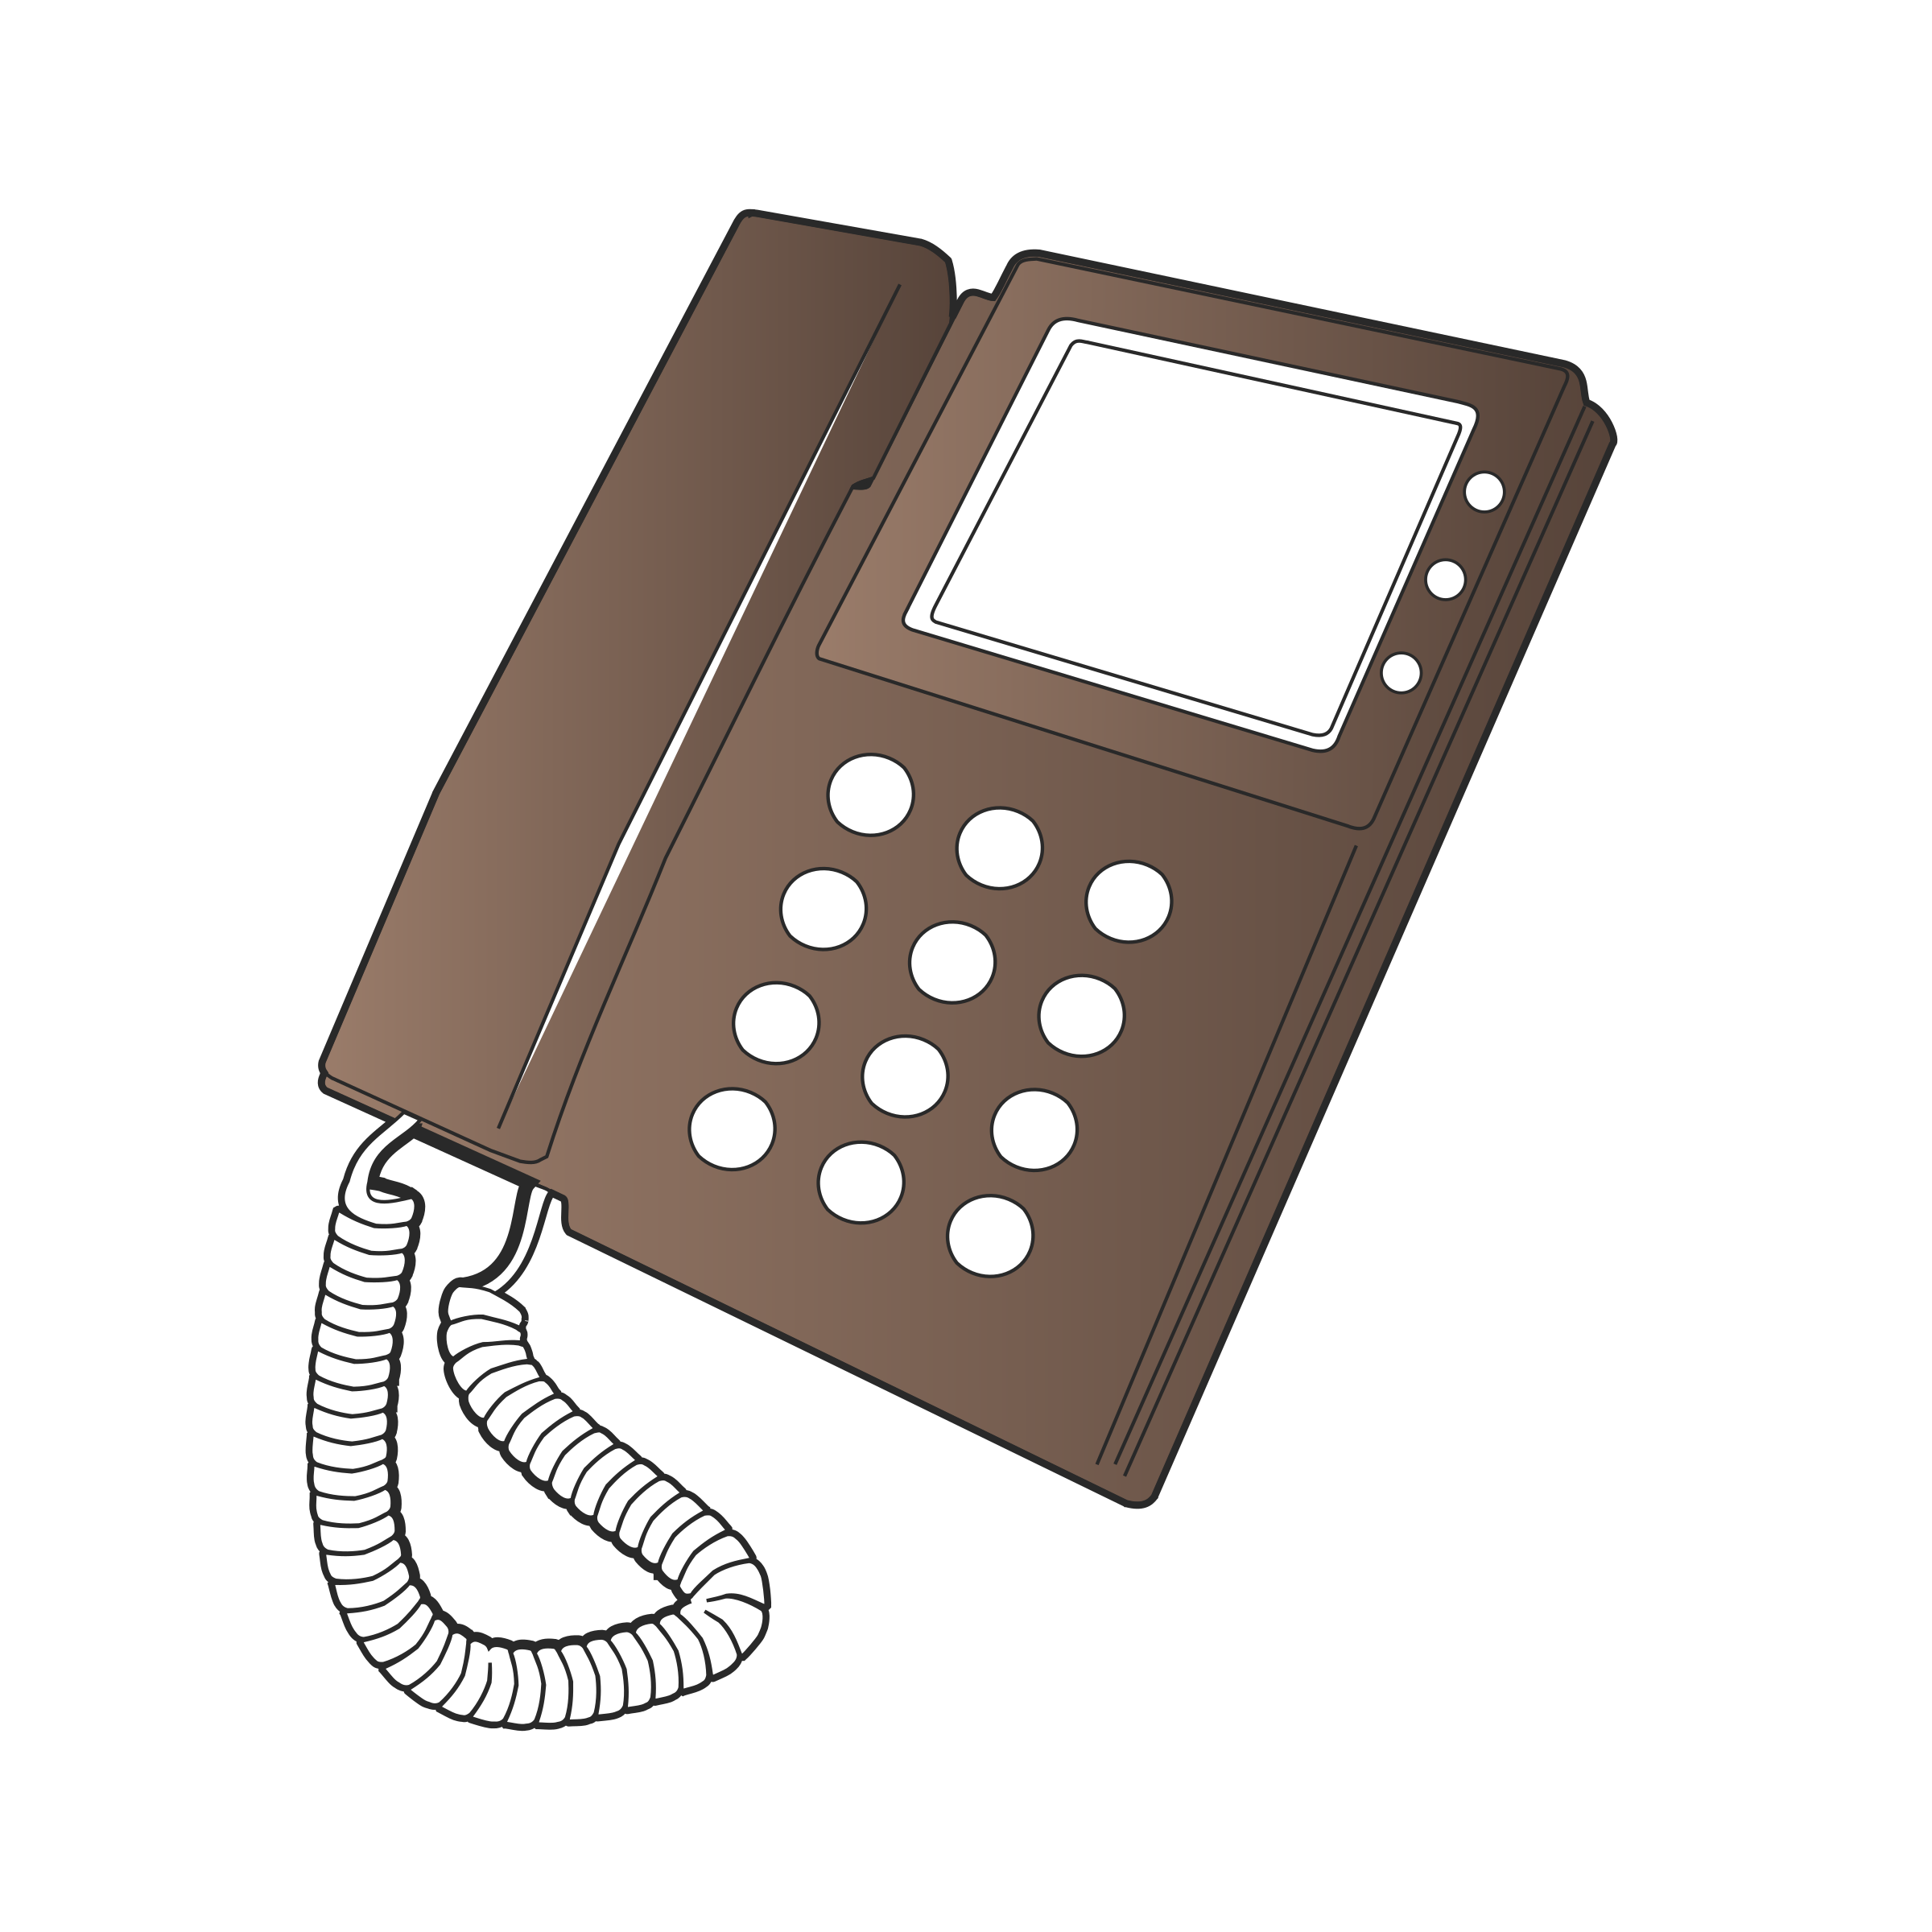 Desk Phone by meticulous